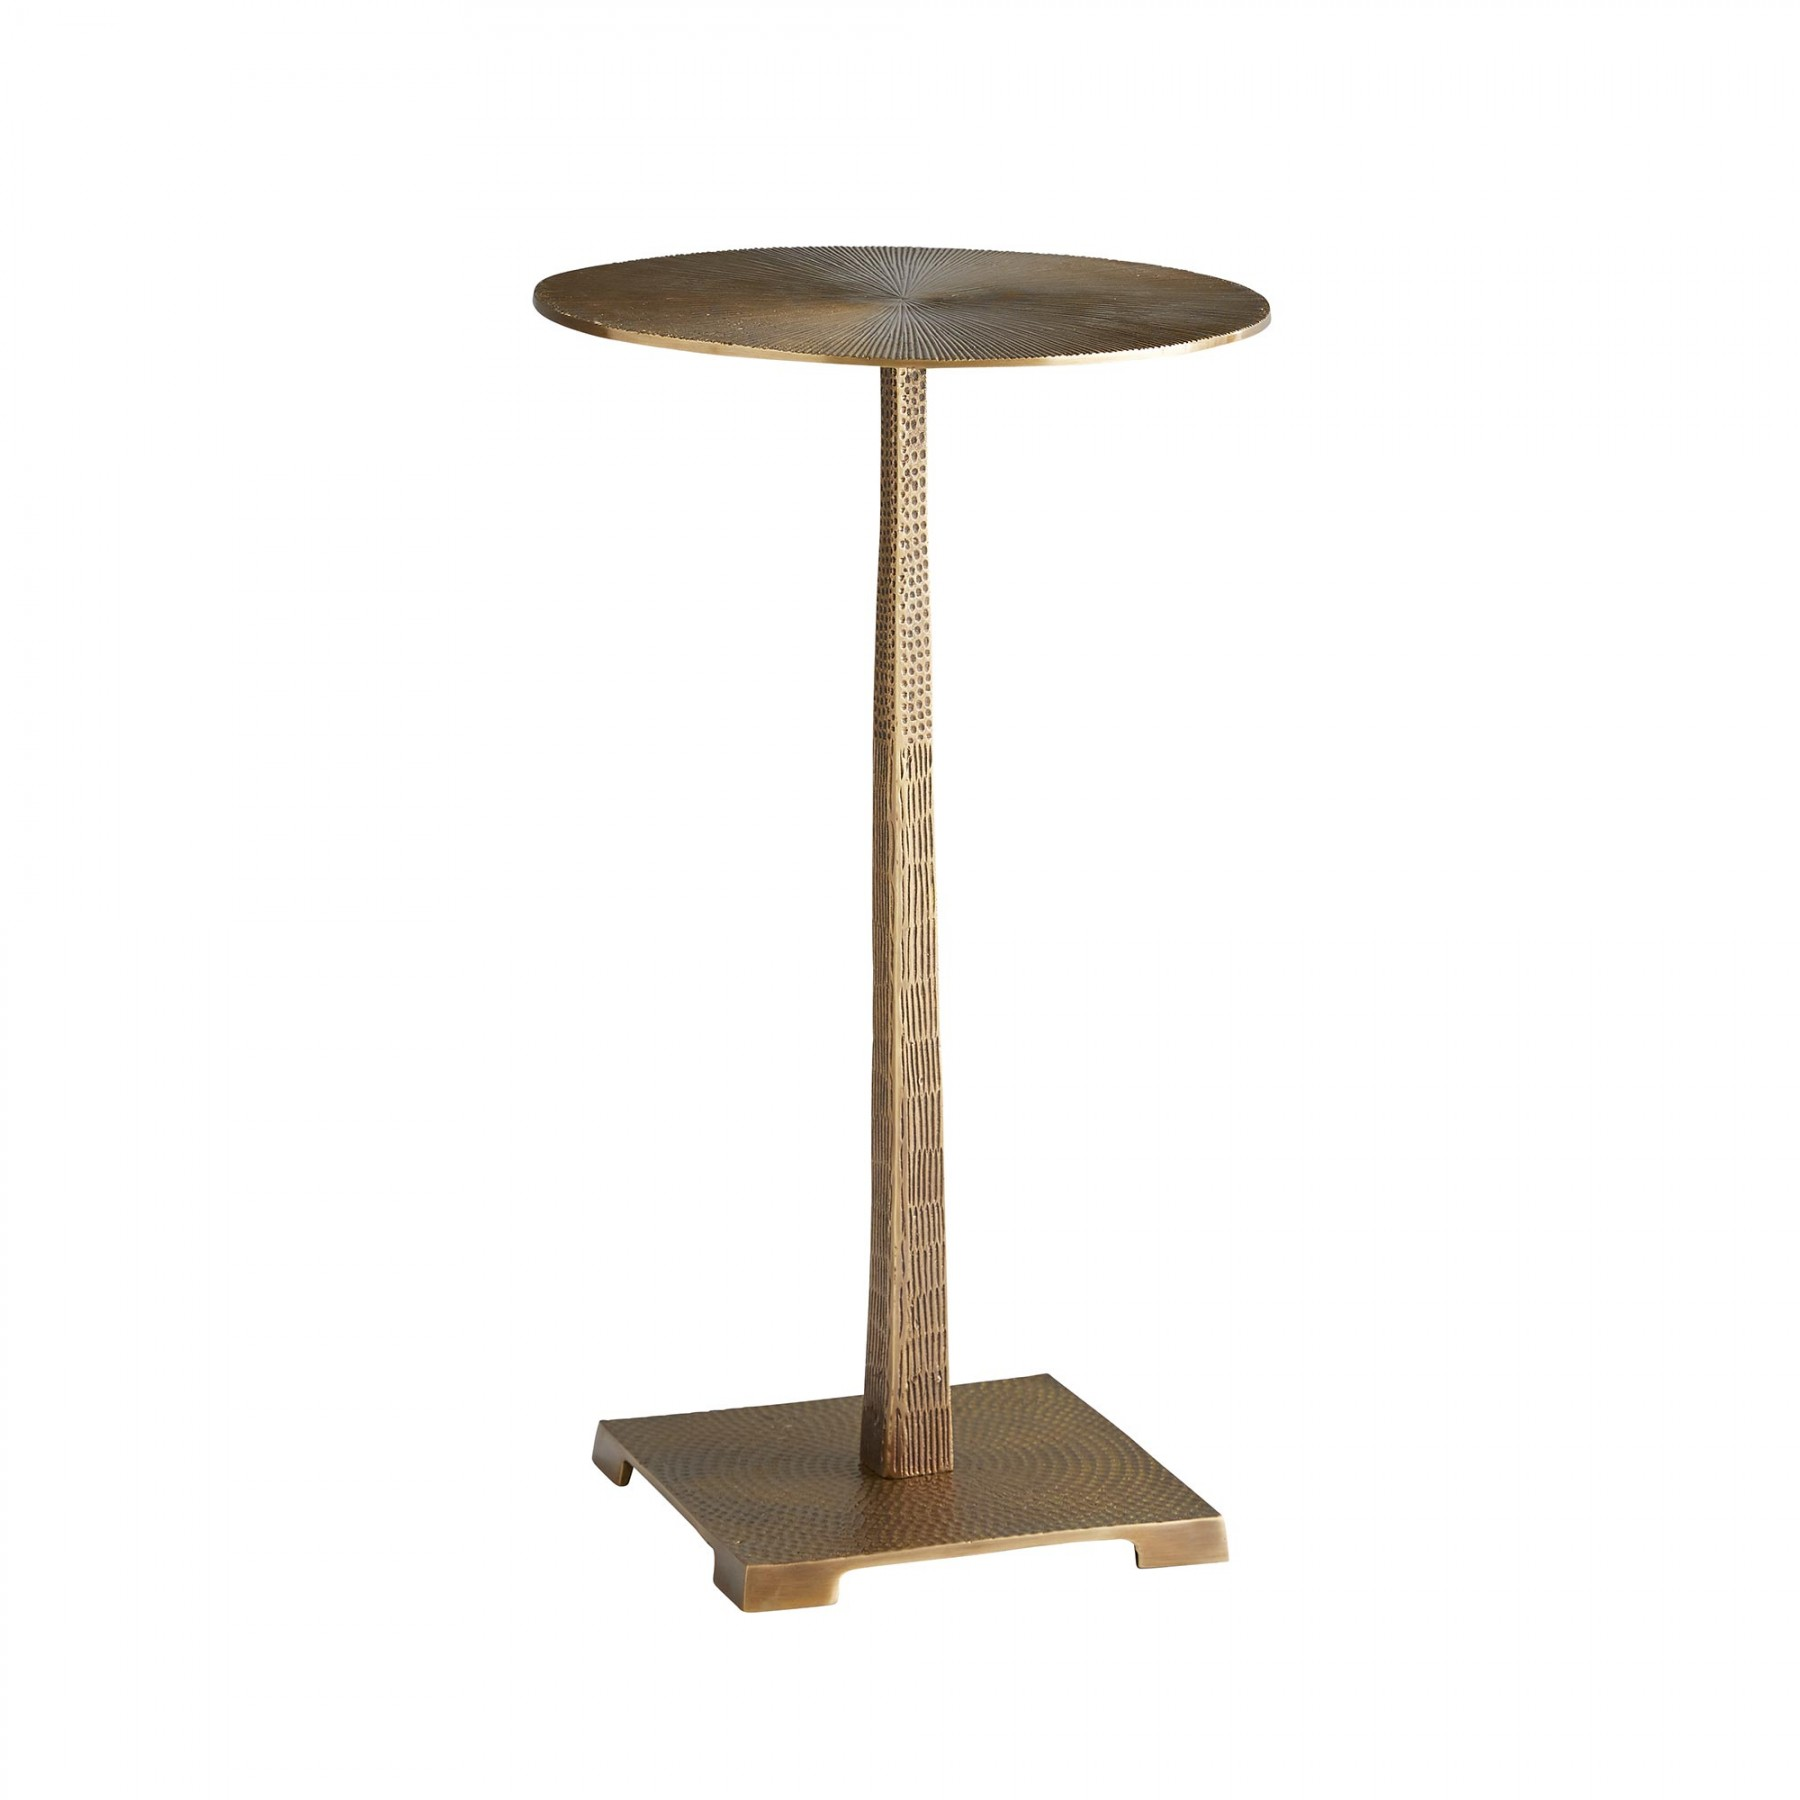 otelia accent table bronze leg brackets retro wooden chairs narrow coffee pulaski corner curio cabinet pier one lamps clearance modern legs simple dining room wood set french